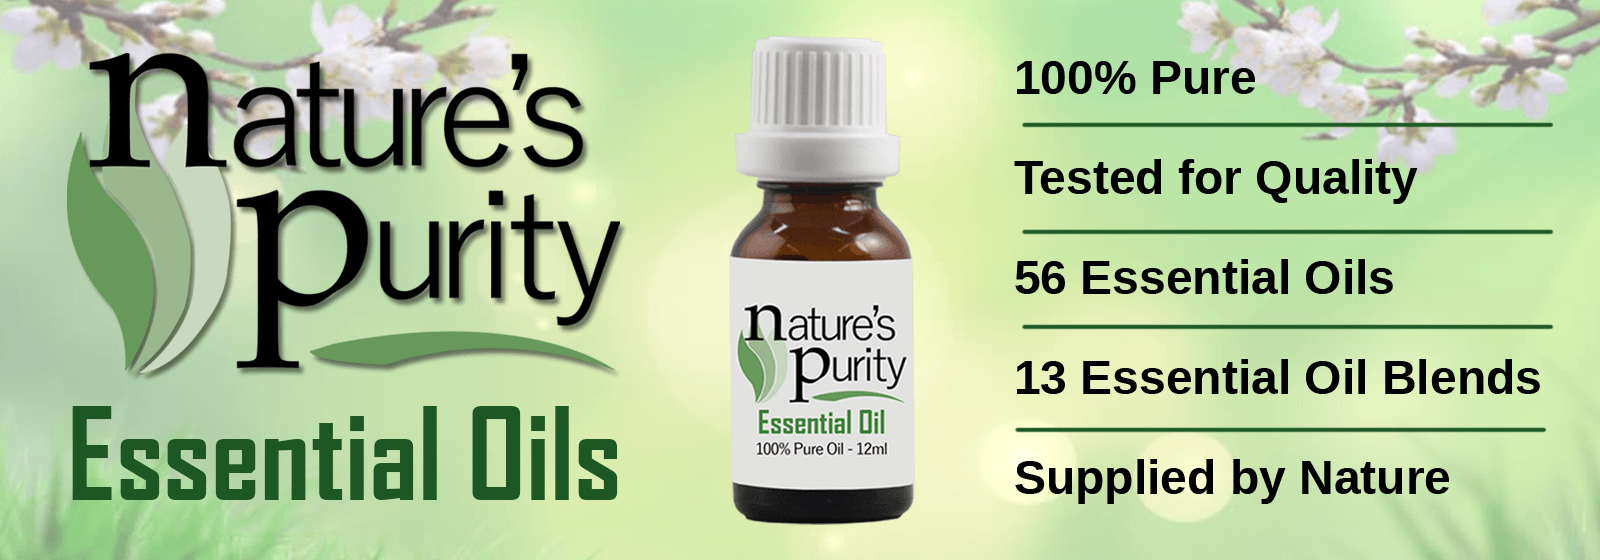 NP essential oils - Home Page